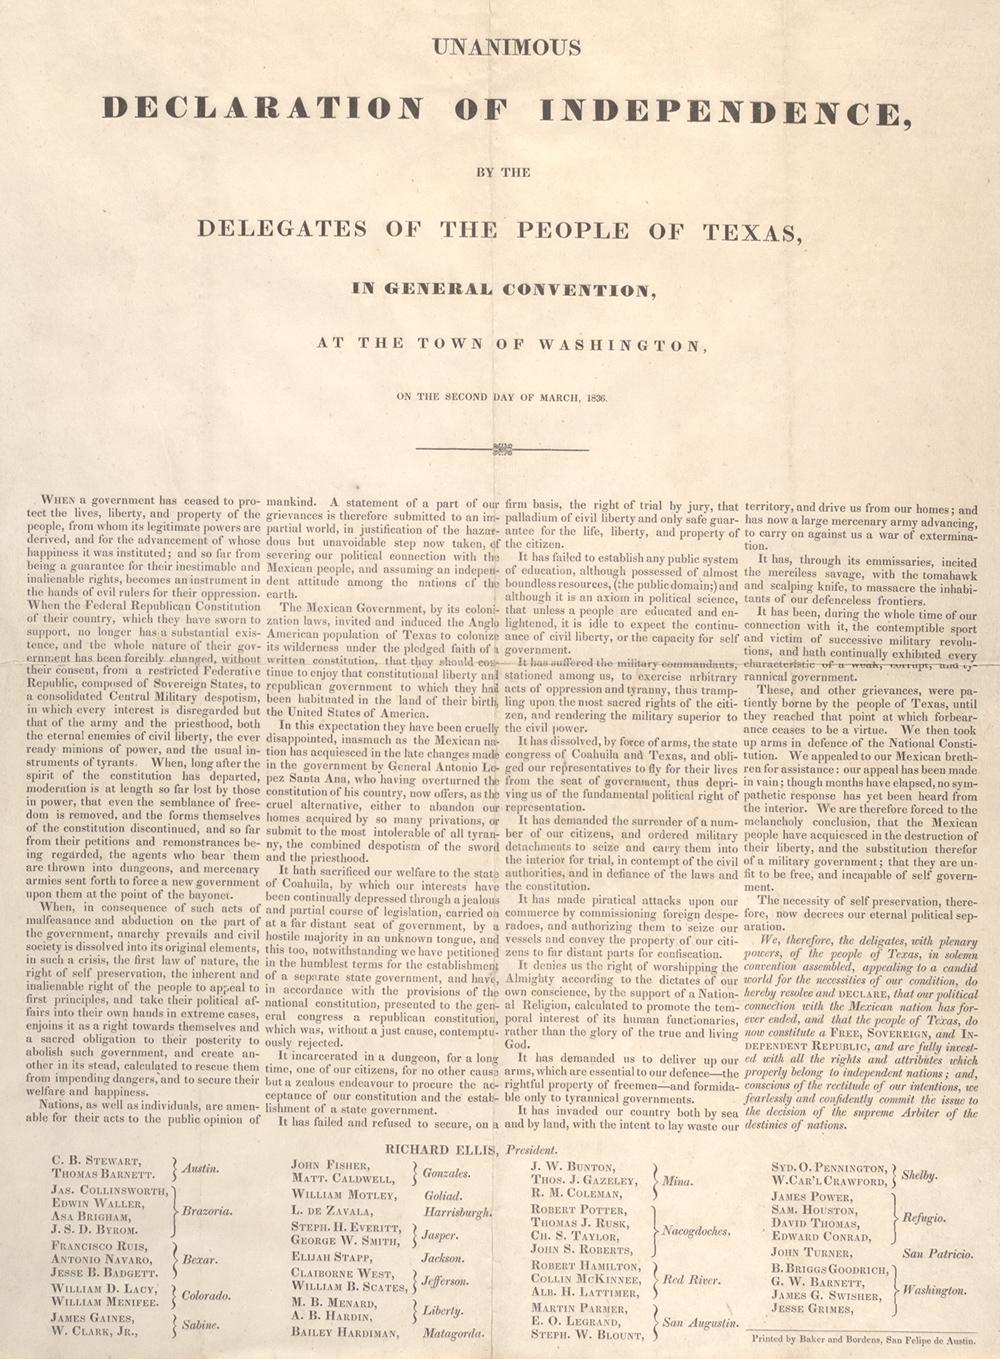 an analysis of the policies and acts in the united states following the declaration of independence A summary of list of abuses and usurpations in thomas jefferson's the declaration of independence acts differed from previous and enacted a policy of seizure.